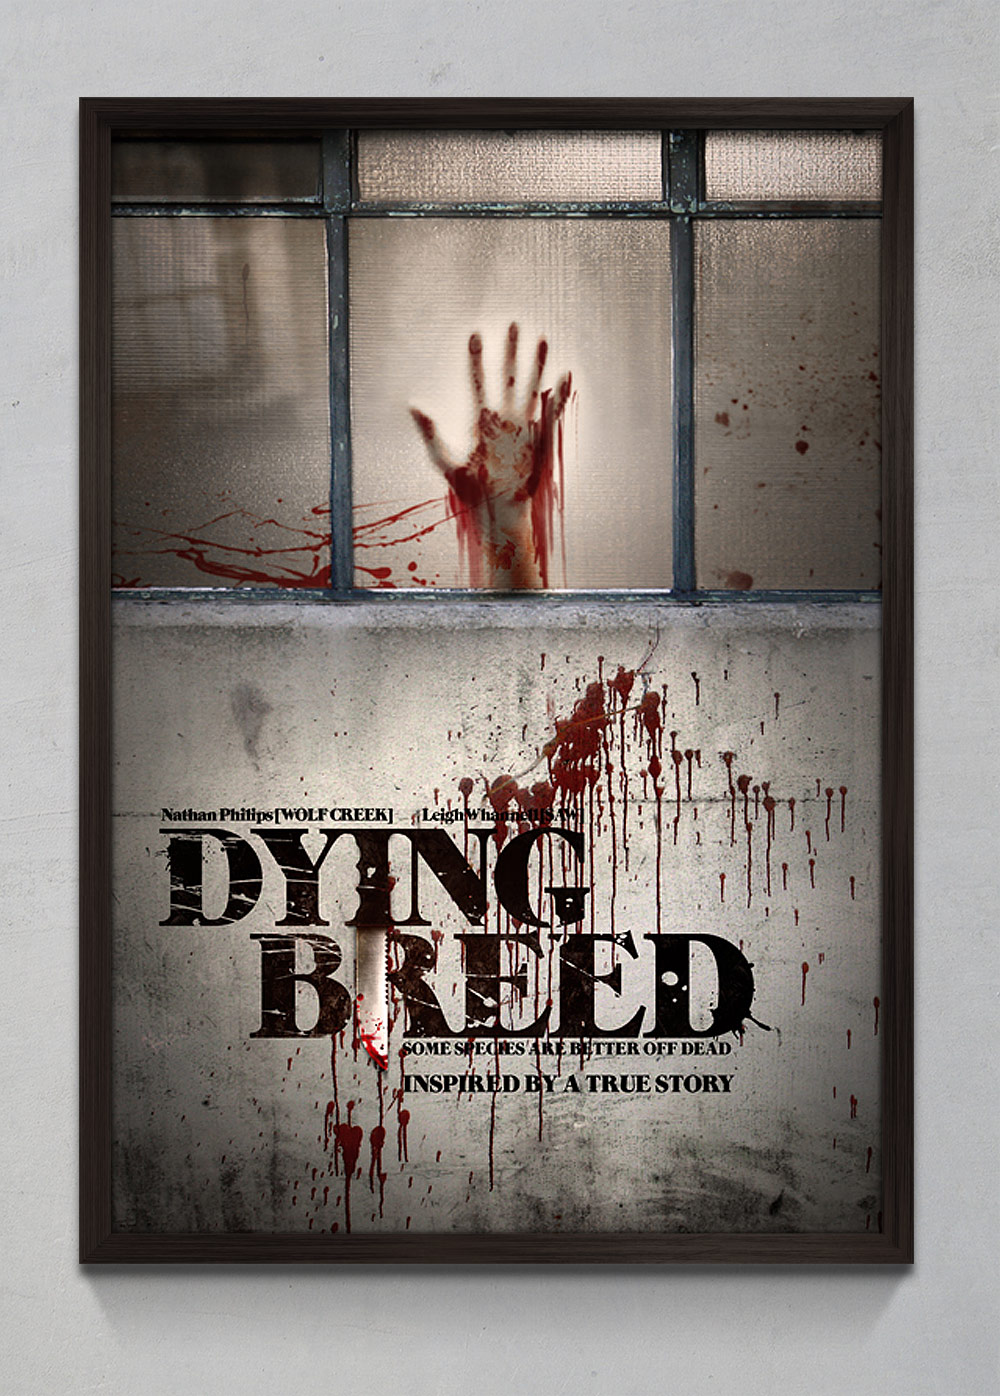 DyingBreed_Poster_Framed_01.jpg